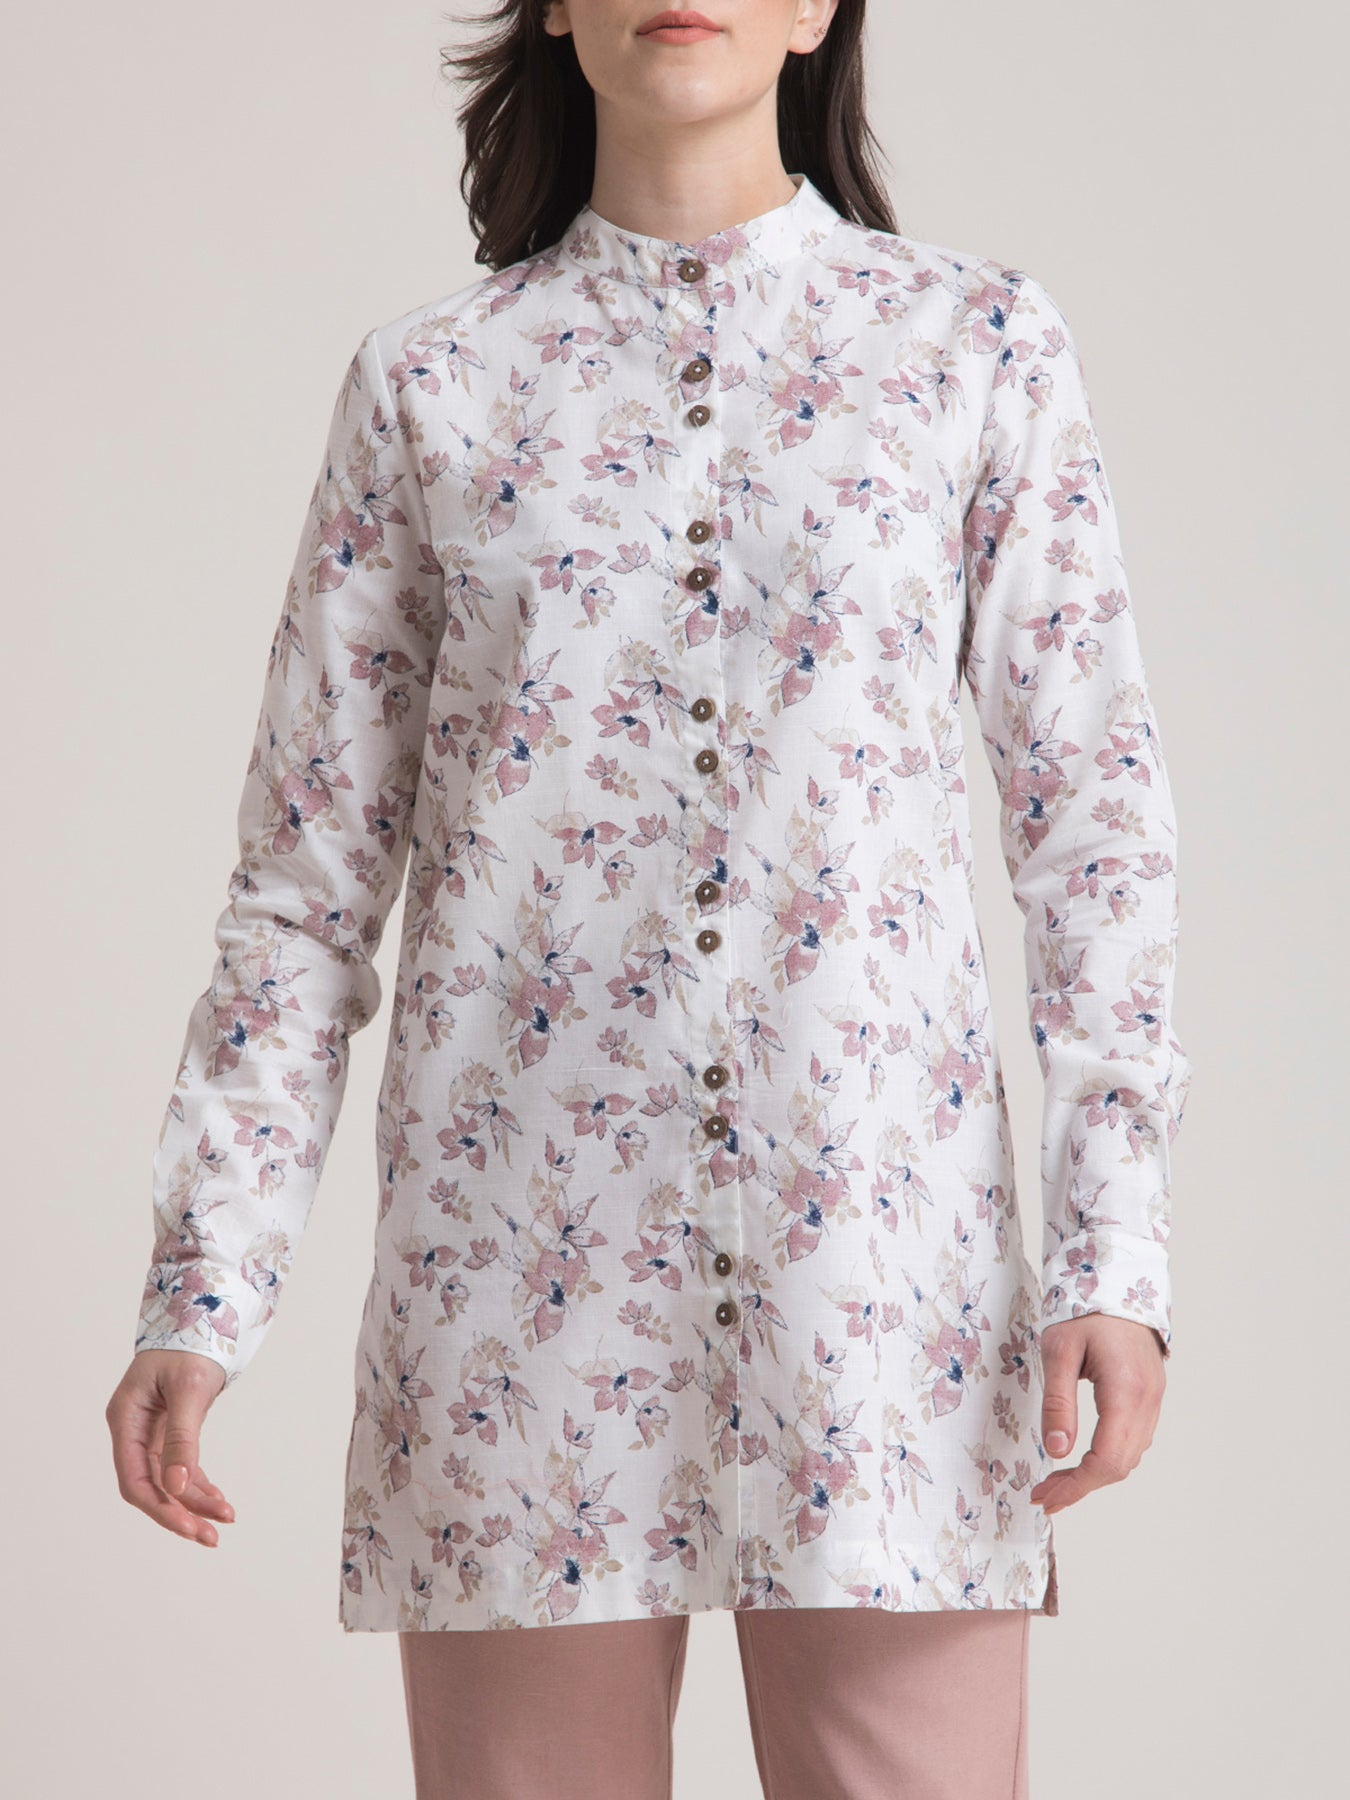 Linen Mandarin Collar Floral Tunic - White and Pink